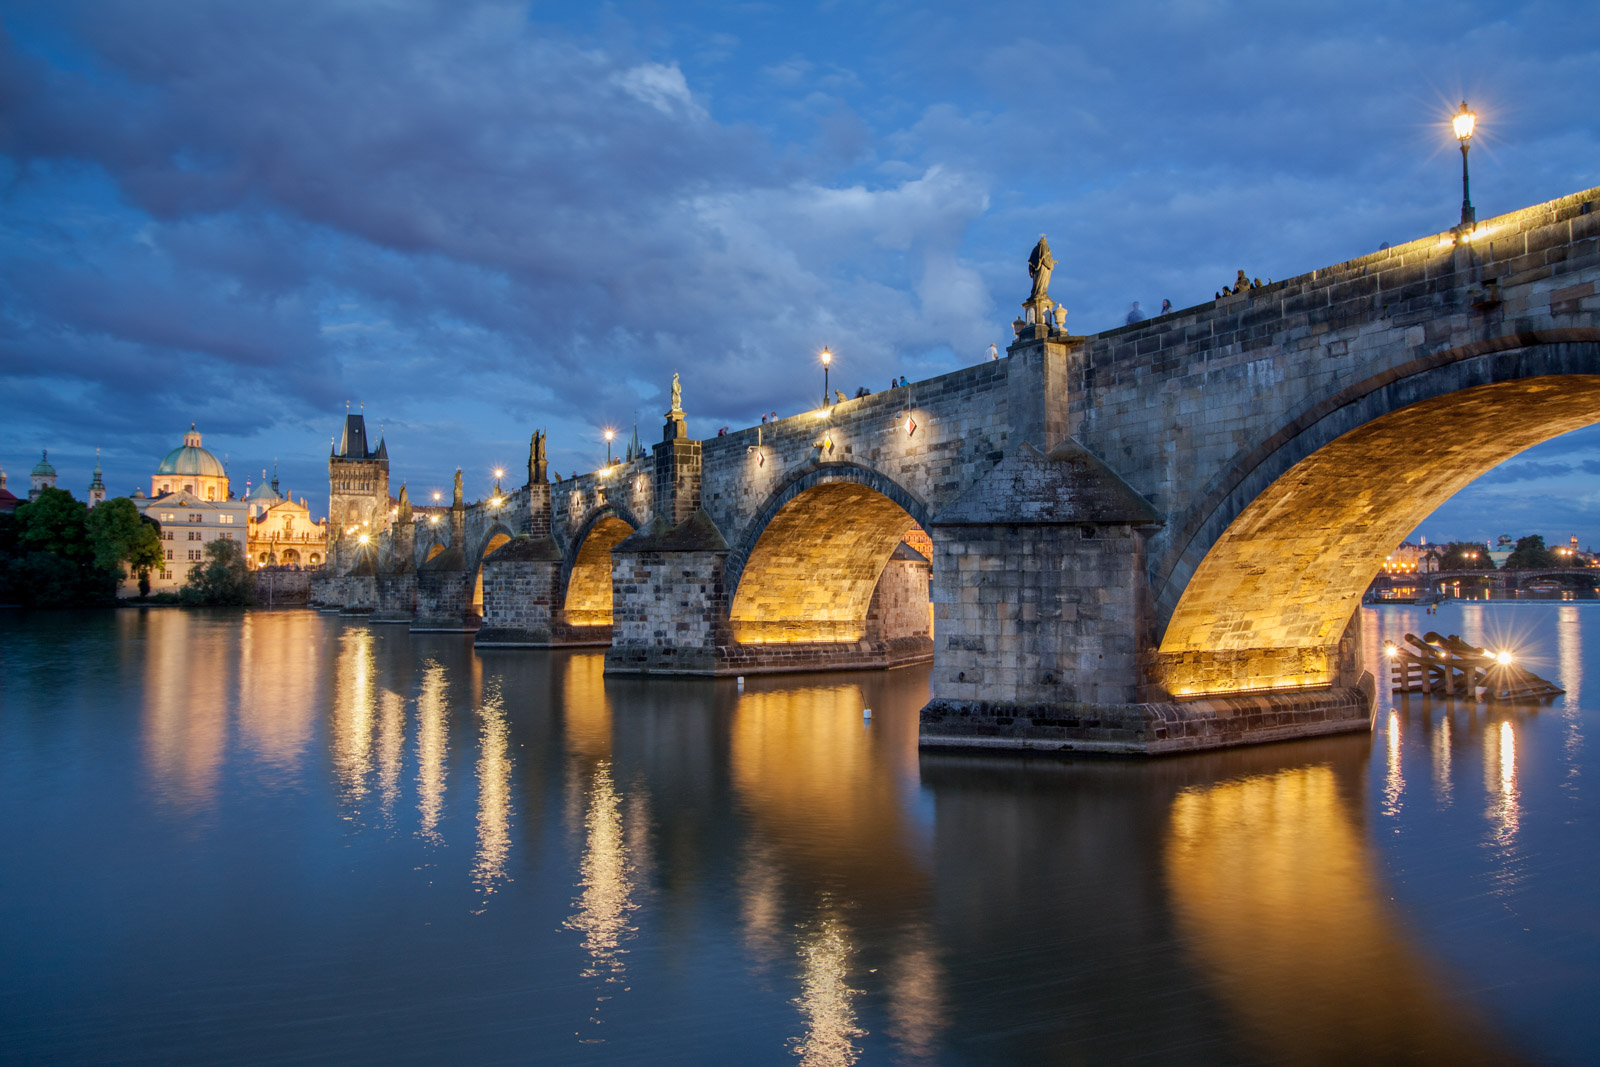 Evening - Charles Bridge